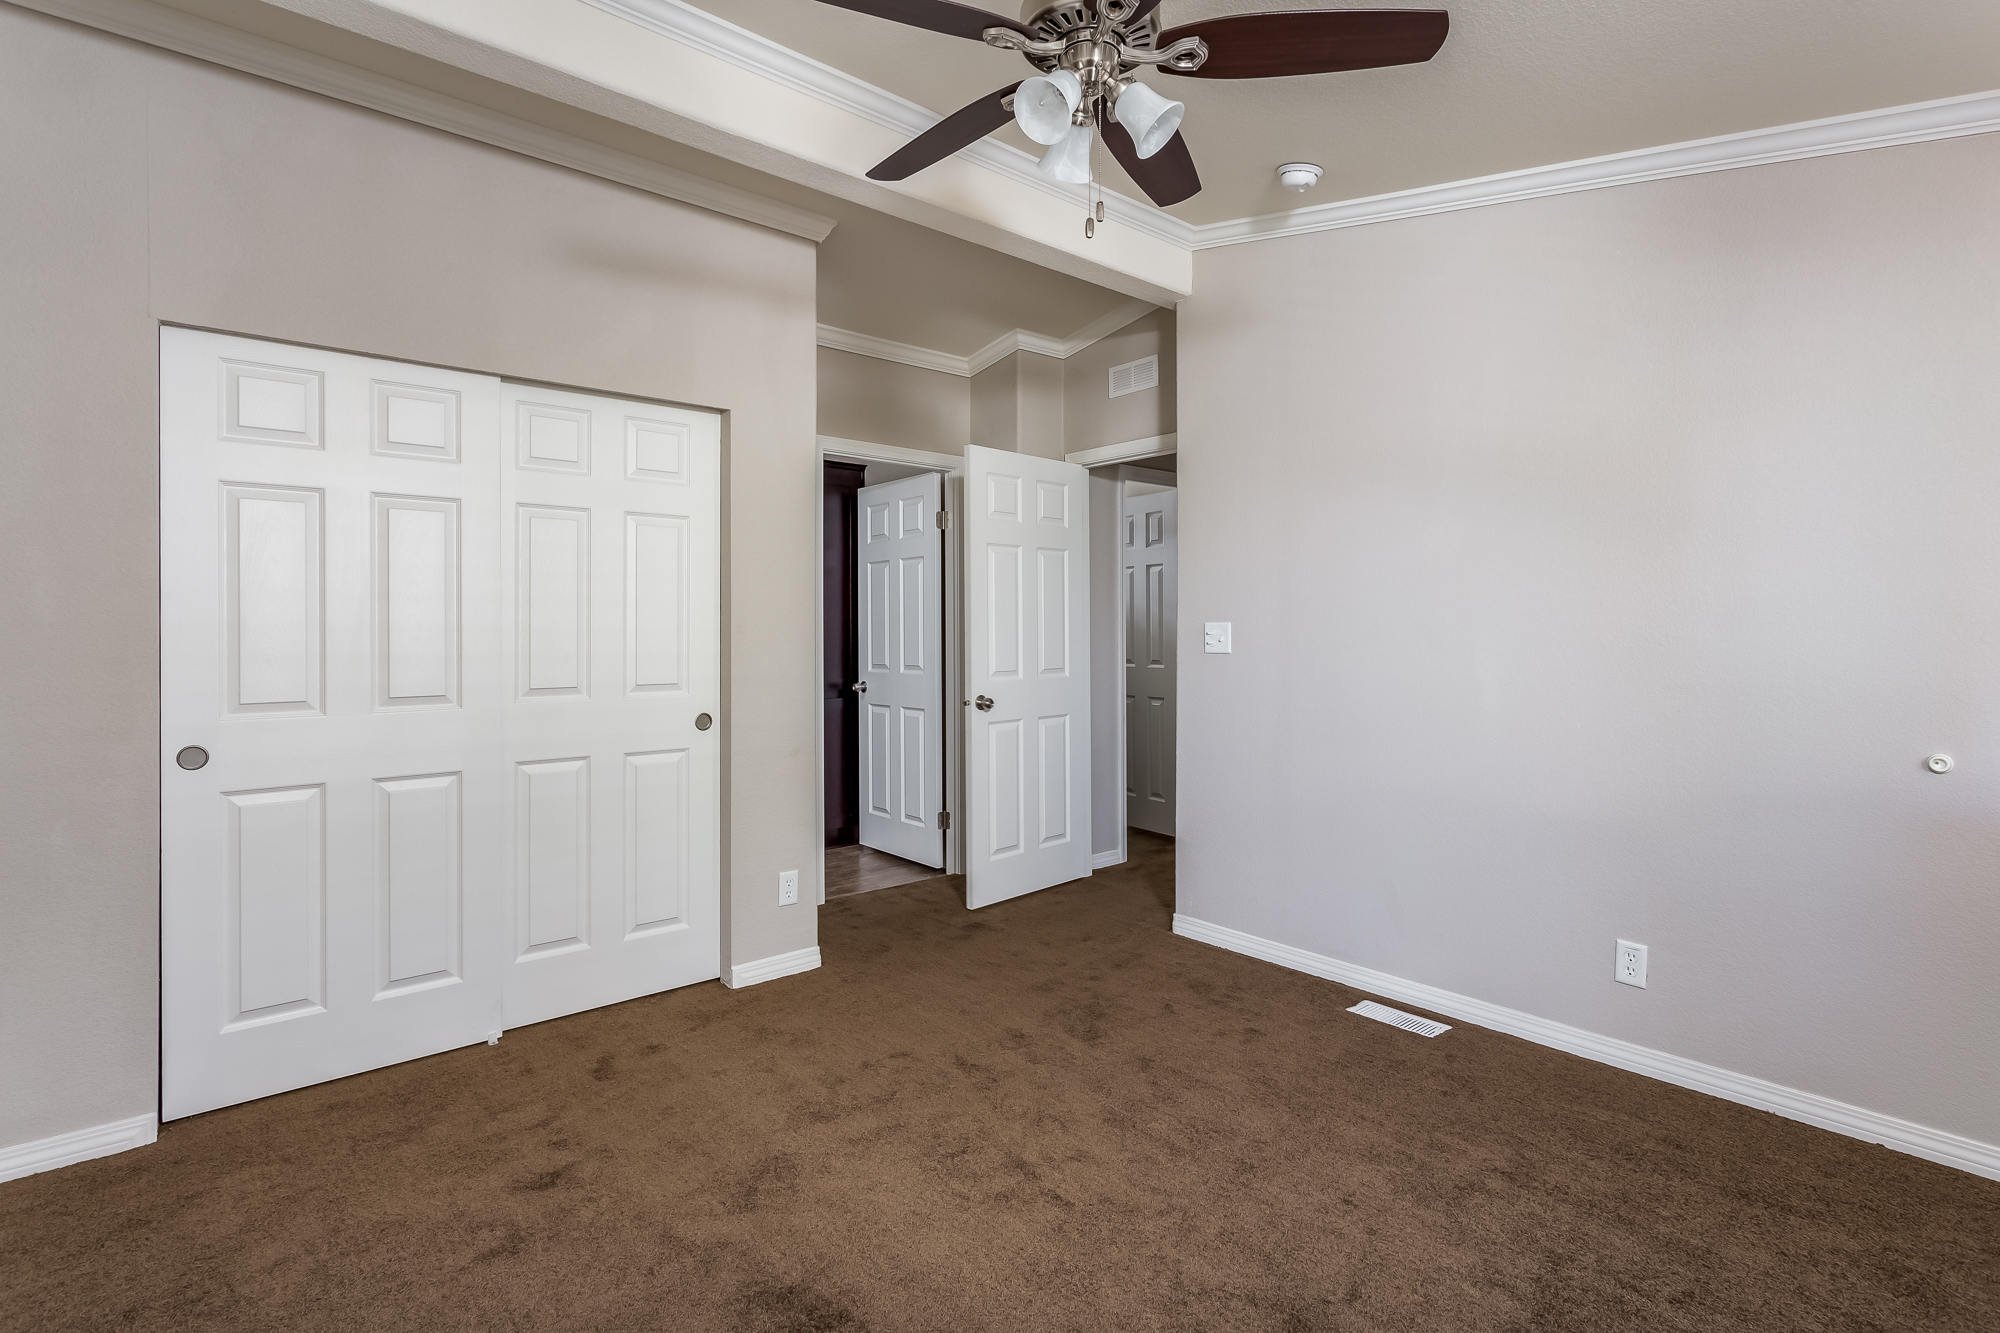 Palm Canyon Dr.,Borrego Springs,San Diego,California,United States 92004,3 Rooms Rooms,2 BathroomsBathrooms,Home,Palm Canyon Dr.,1005